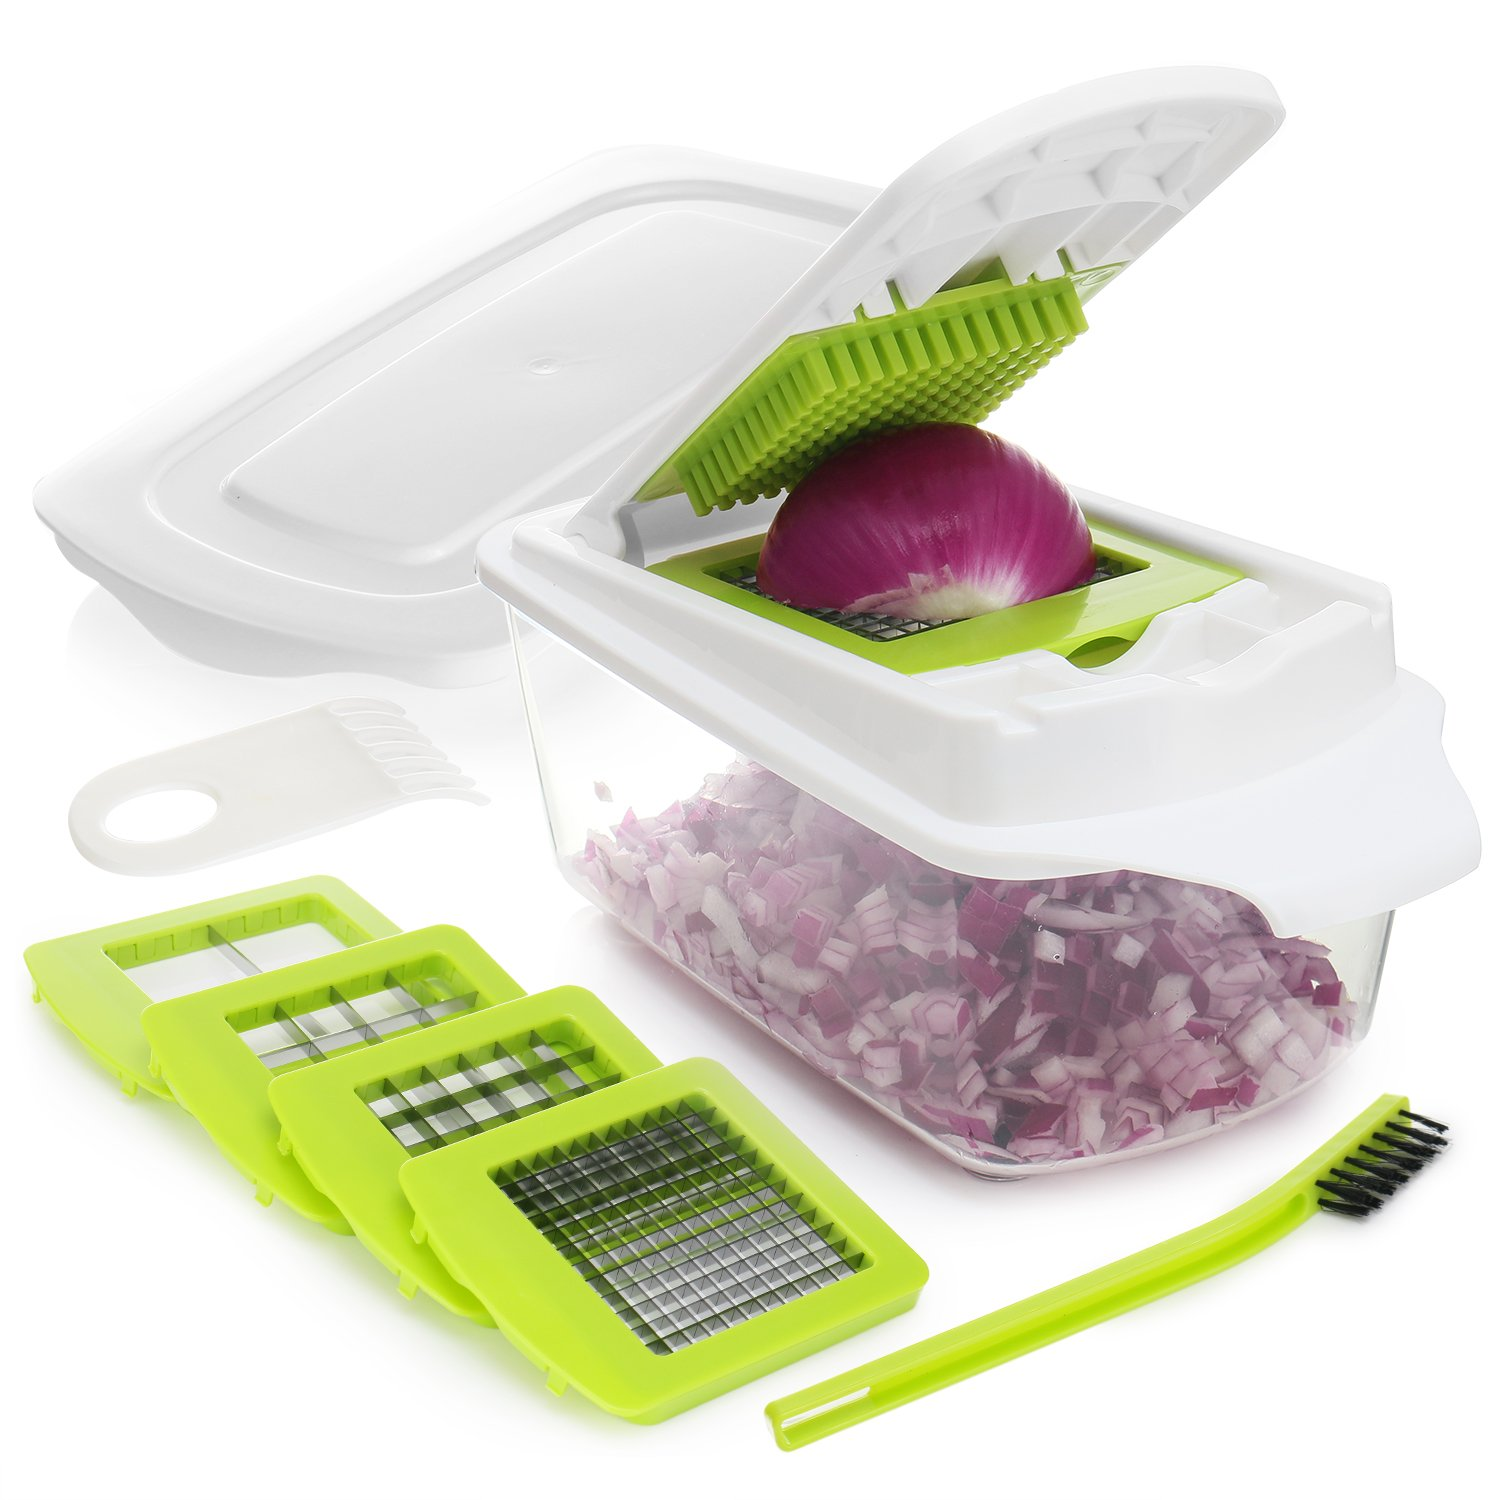 Onion Chopper Pro Vegetable Chopper Slicer Dicer Cutter - Strongest 80% Heavier Duty 200% More Container Capacity - Cheese & Veggie Chopper - Food Chopper Dicer with 4 Blades & Keep-Fresh Lid by Zalik by Zalik